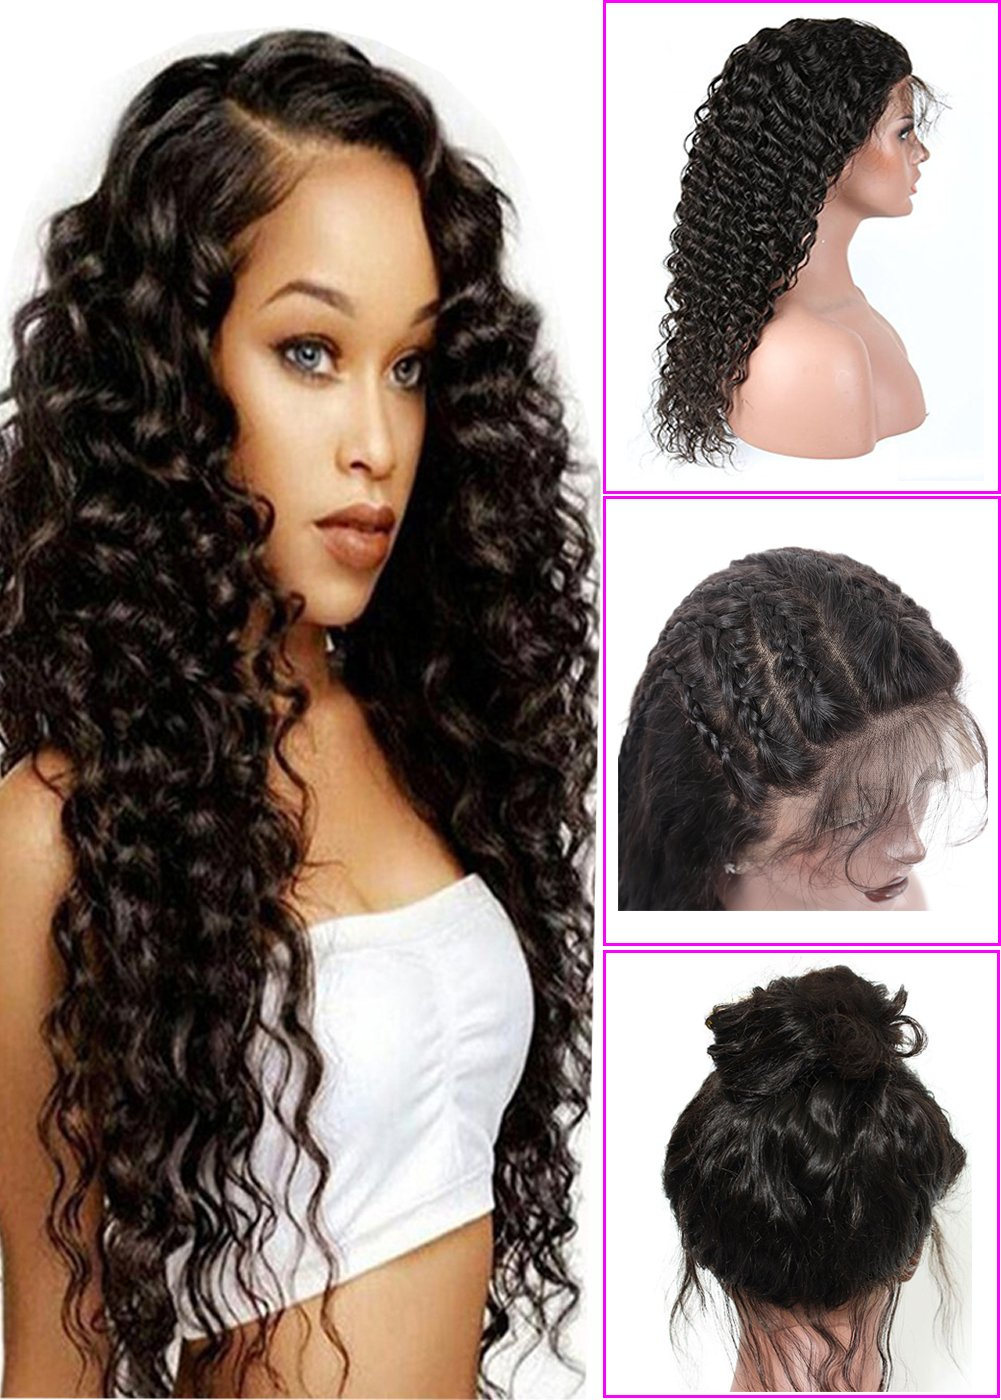 b865a6da5cb Younsolo Deep Wave Lace Front Wigs 20 inch Unprocessed Brazilian Virgin  Human Hair Wig Pre Plucked...